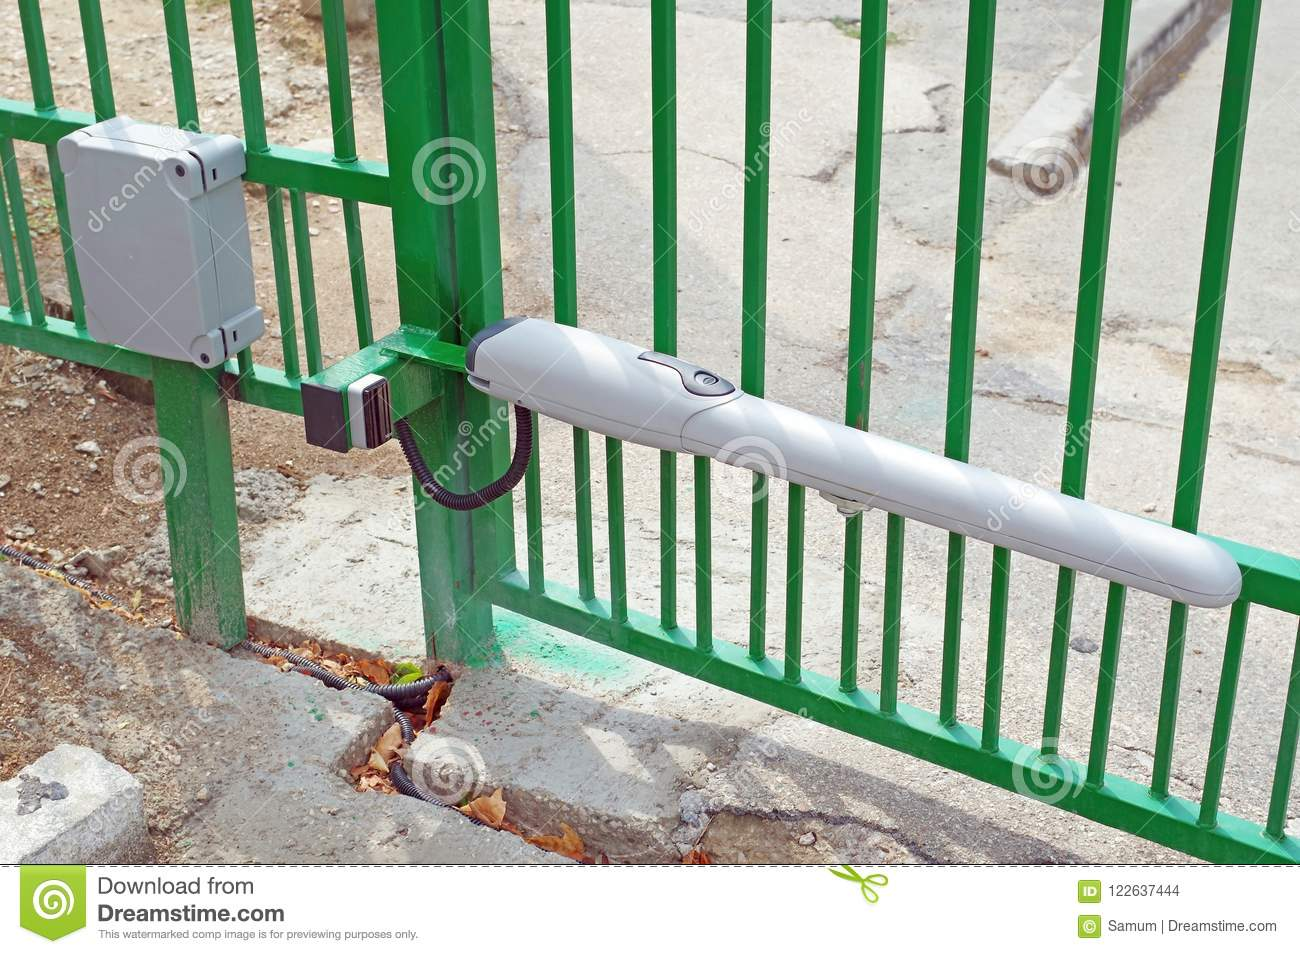 Automatic barrier gates stock photo  Image of equipment